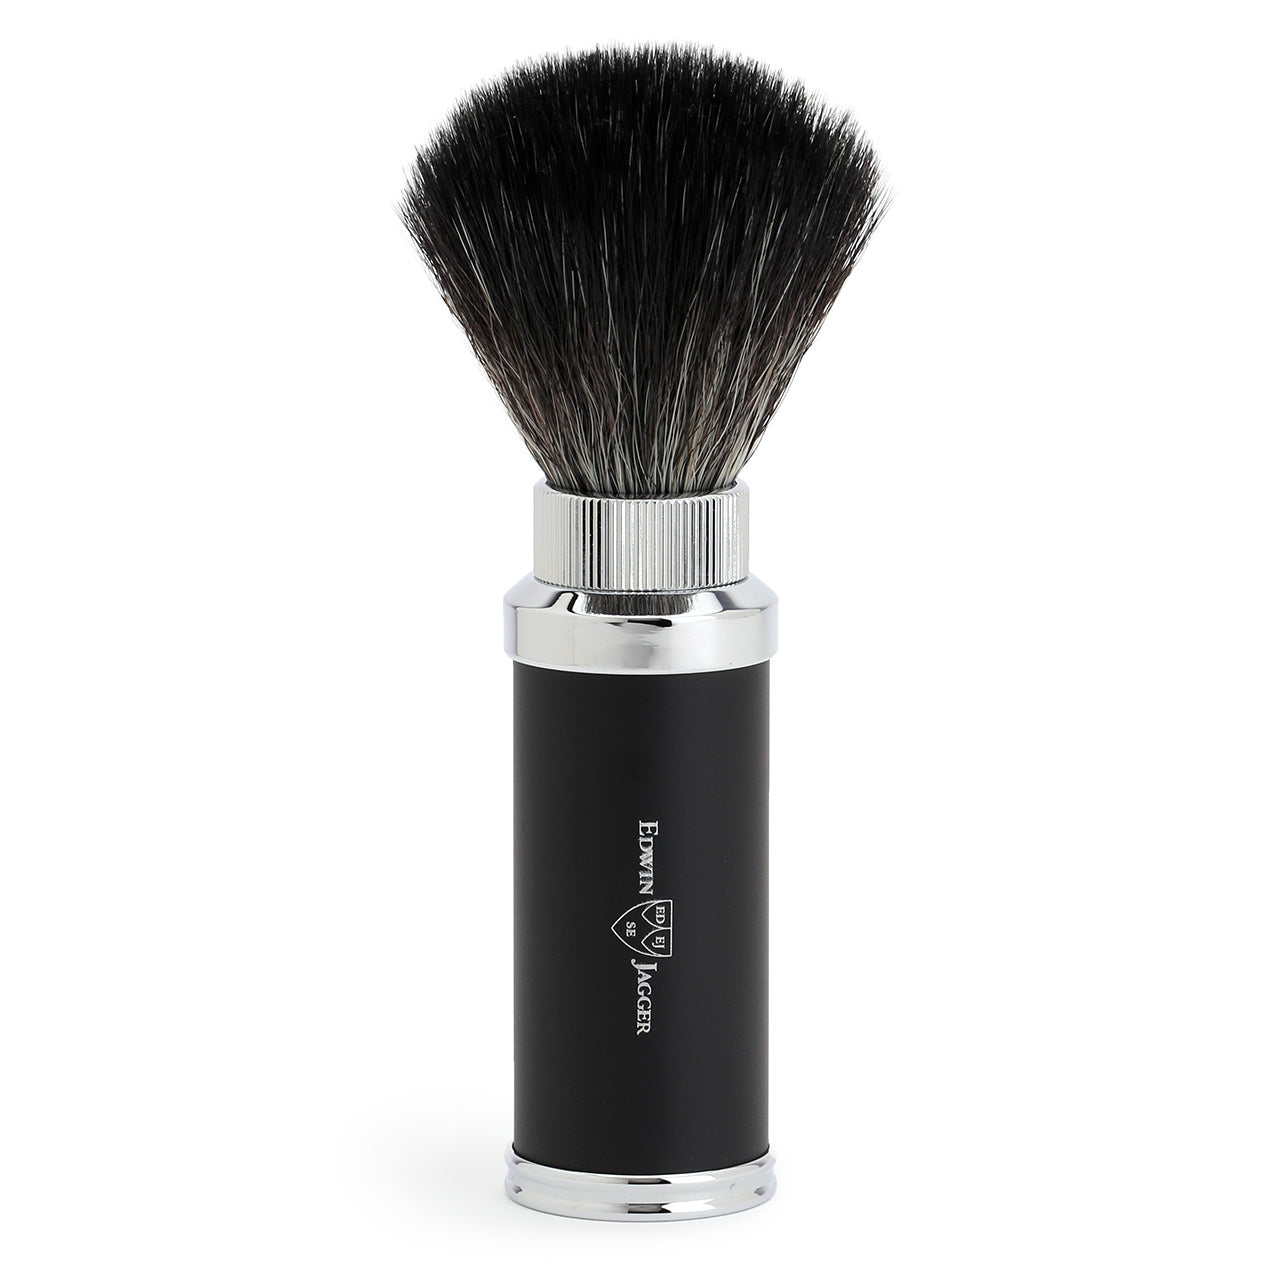 Edwin Jagger Travel Shave Brush, Black & Chrome